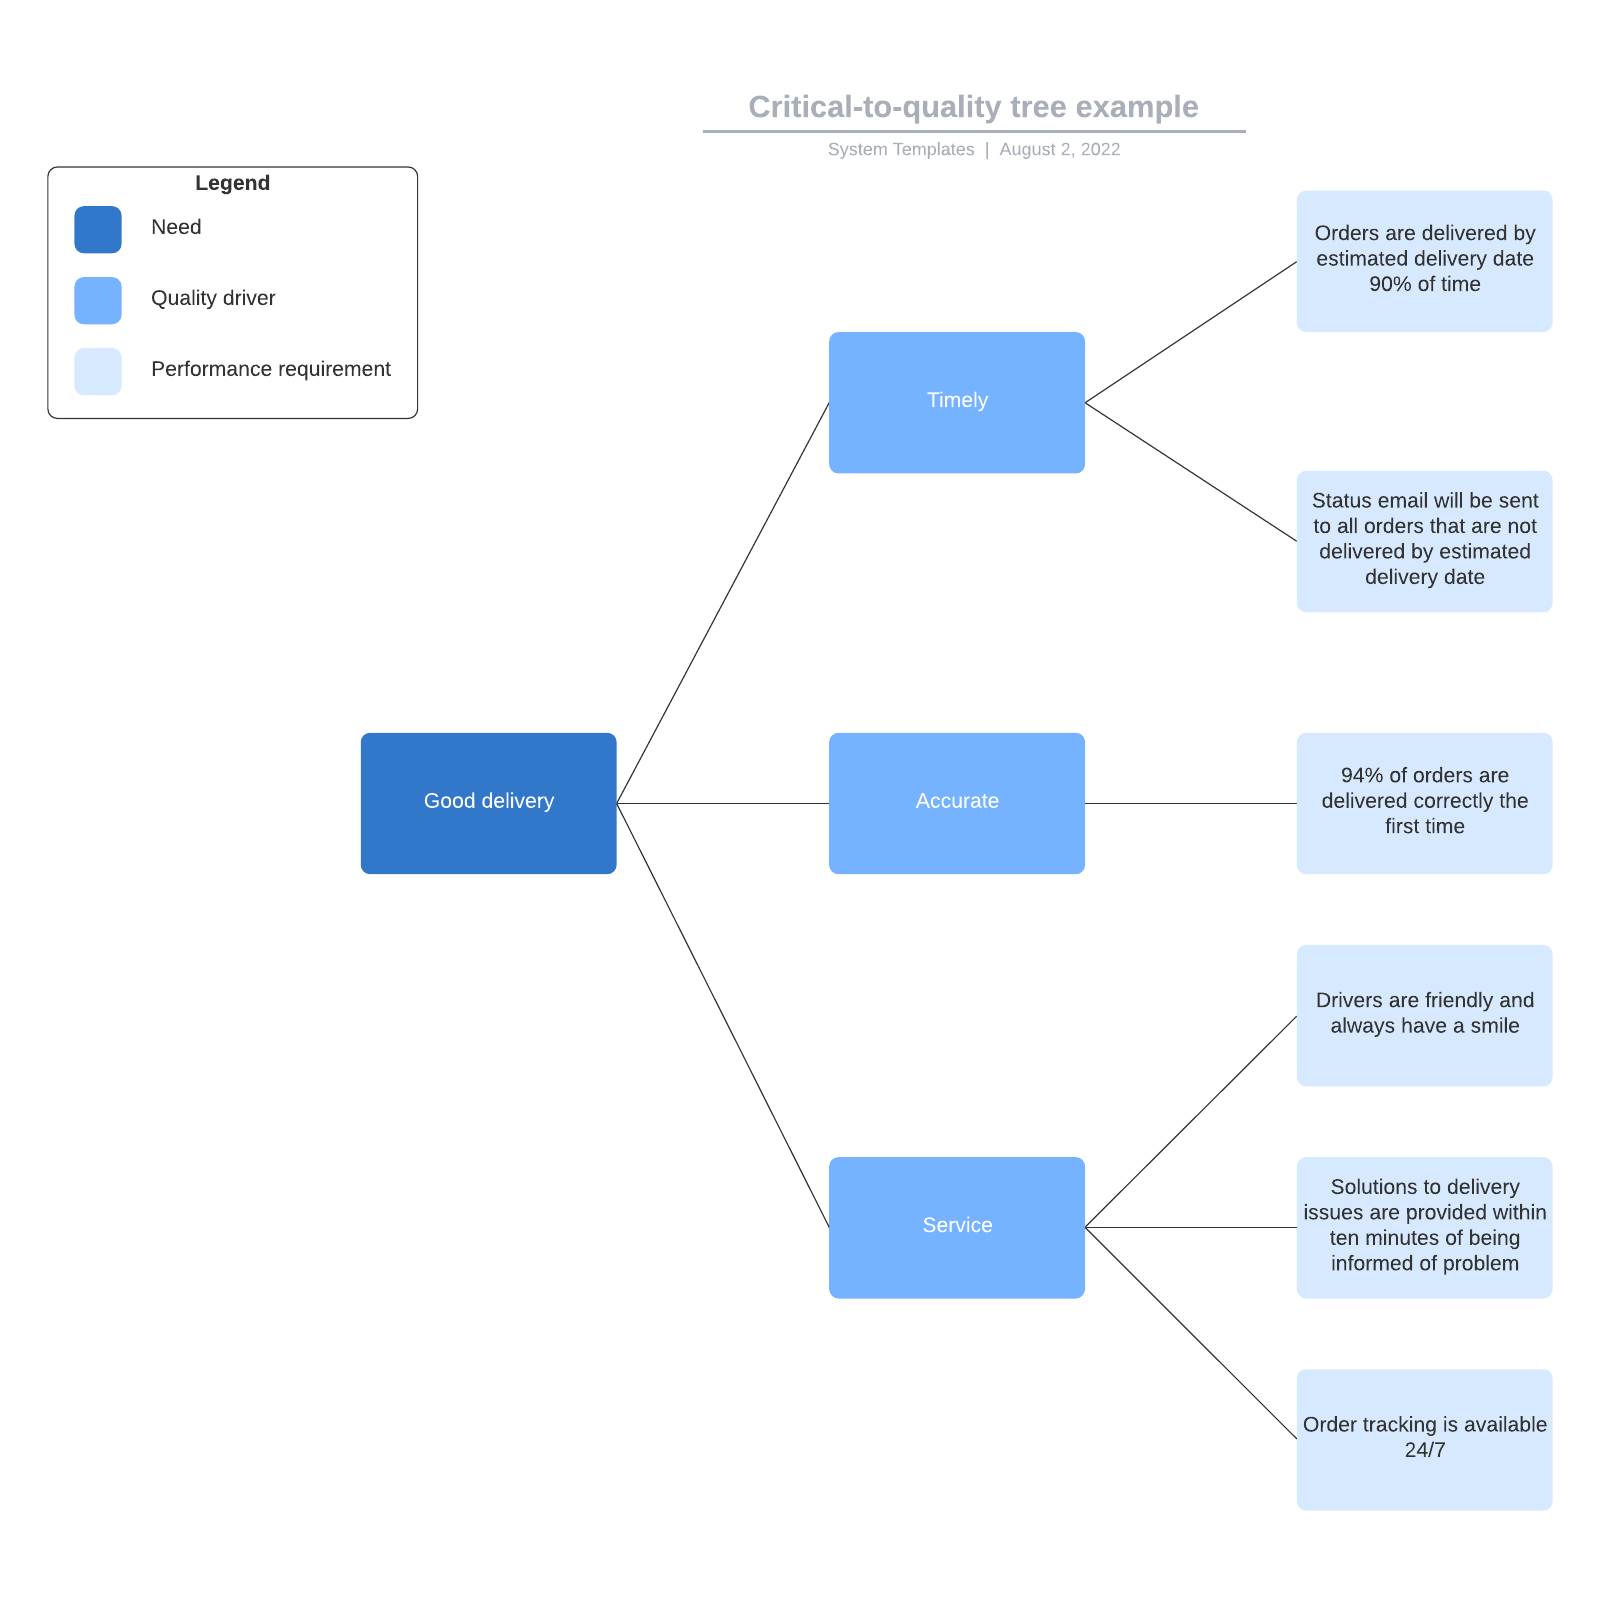 Critical-to-quality tree example